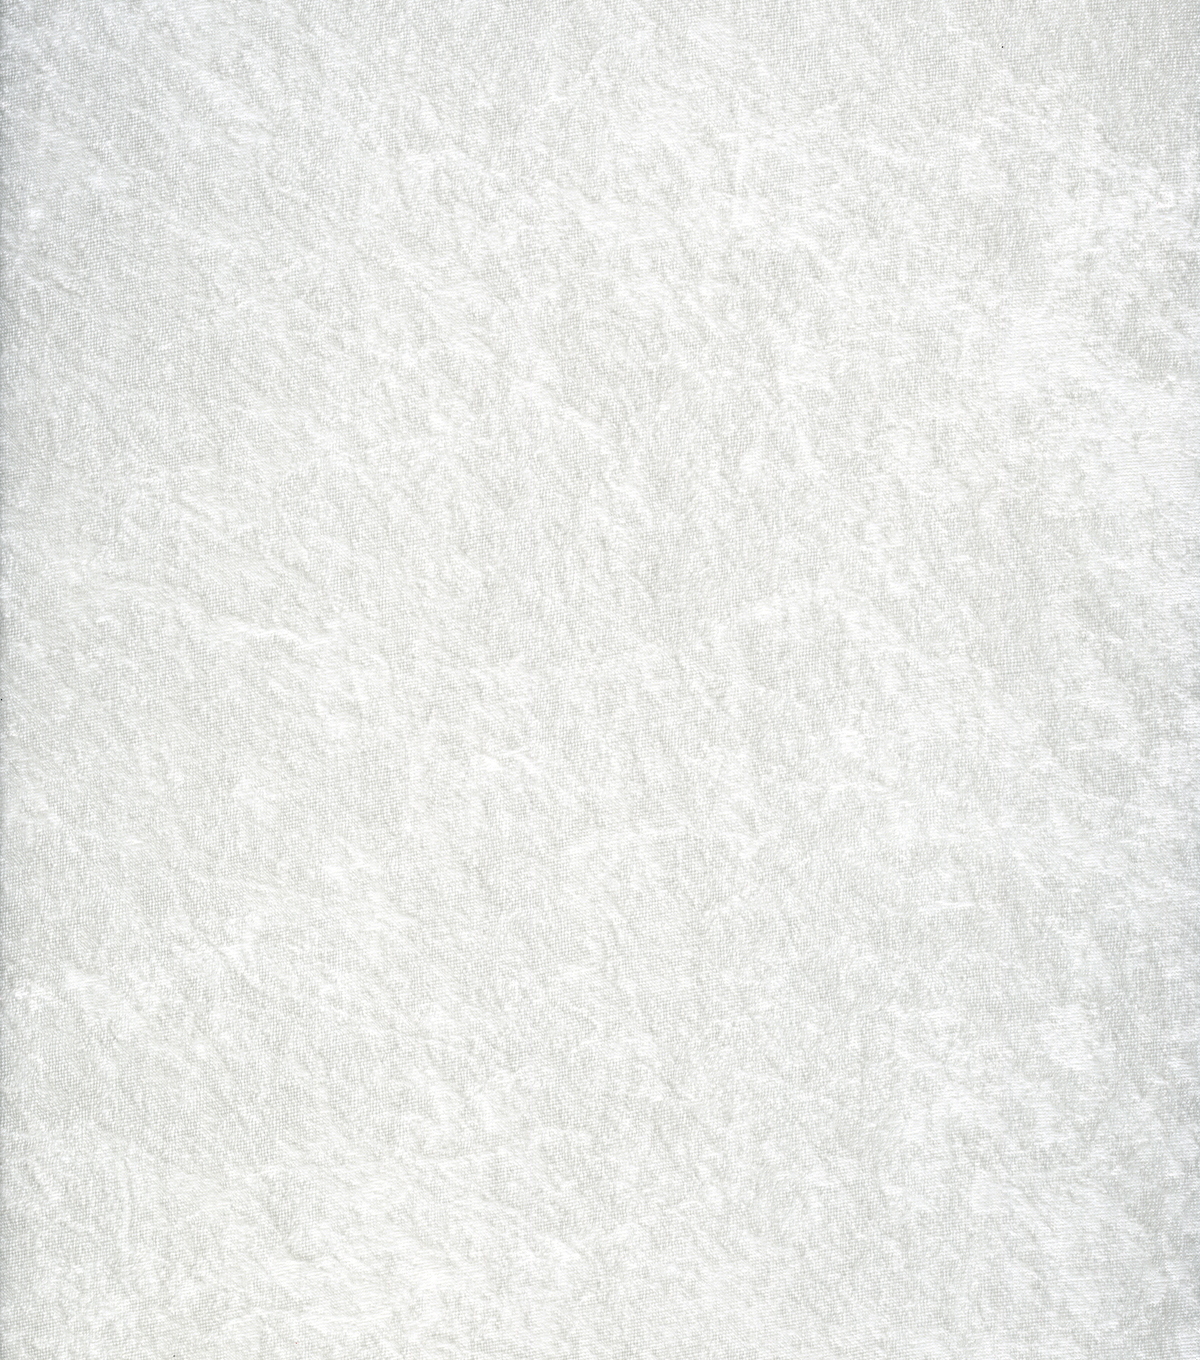 Glitterbug Crushed Panne Velvet Fabric, White